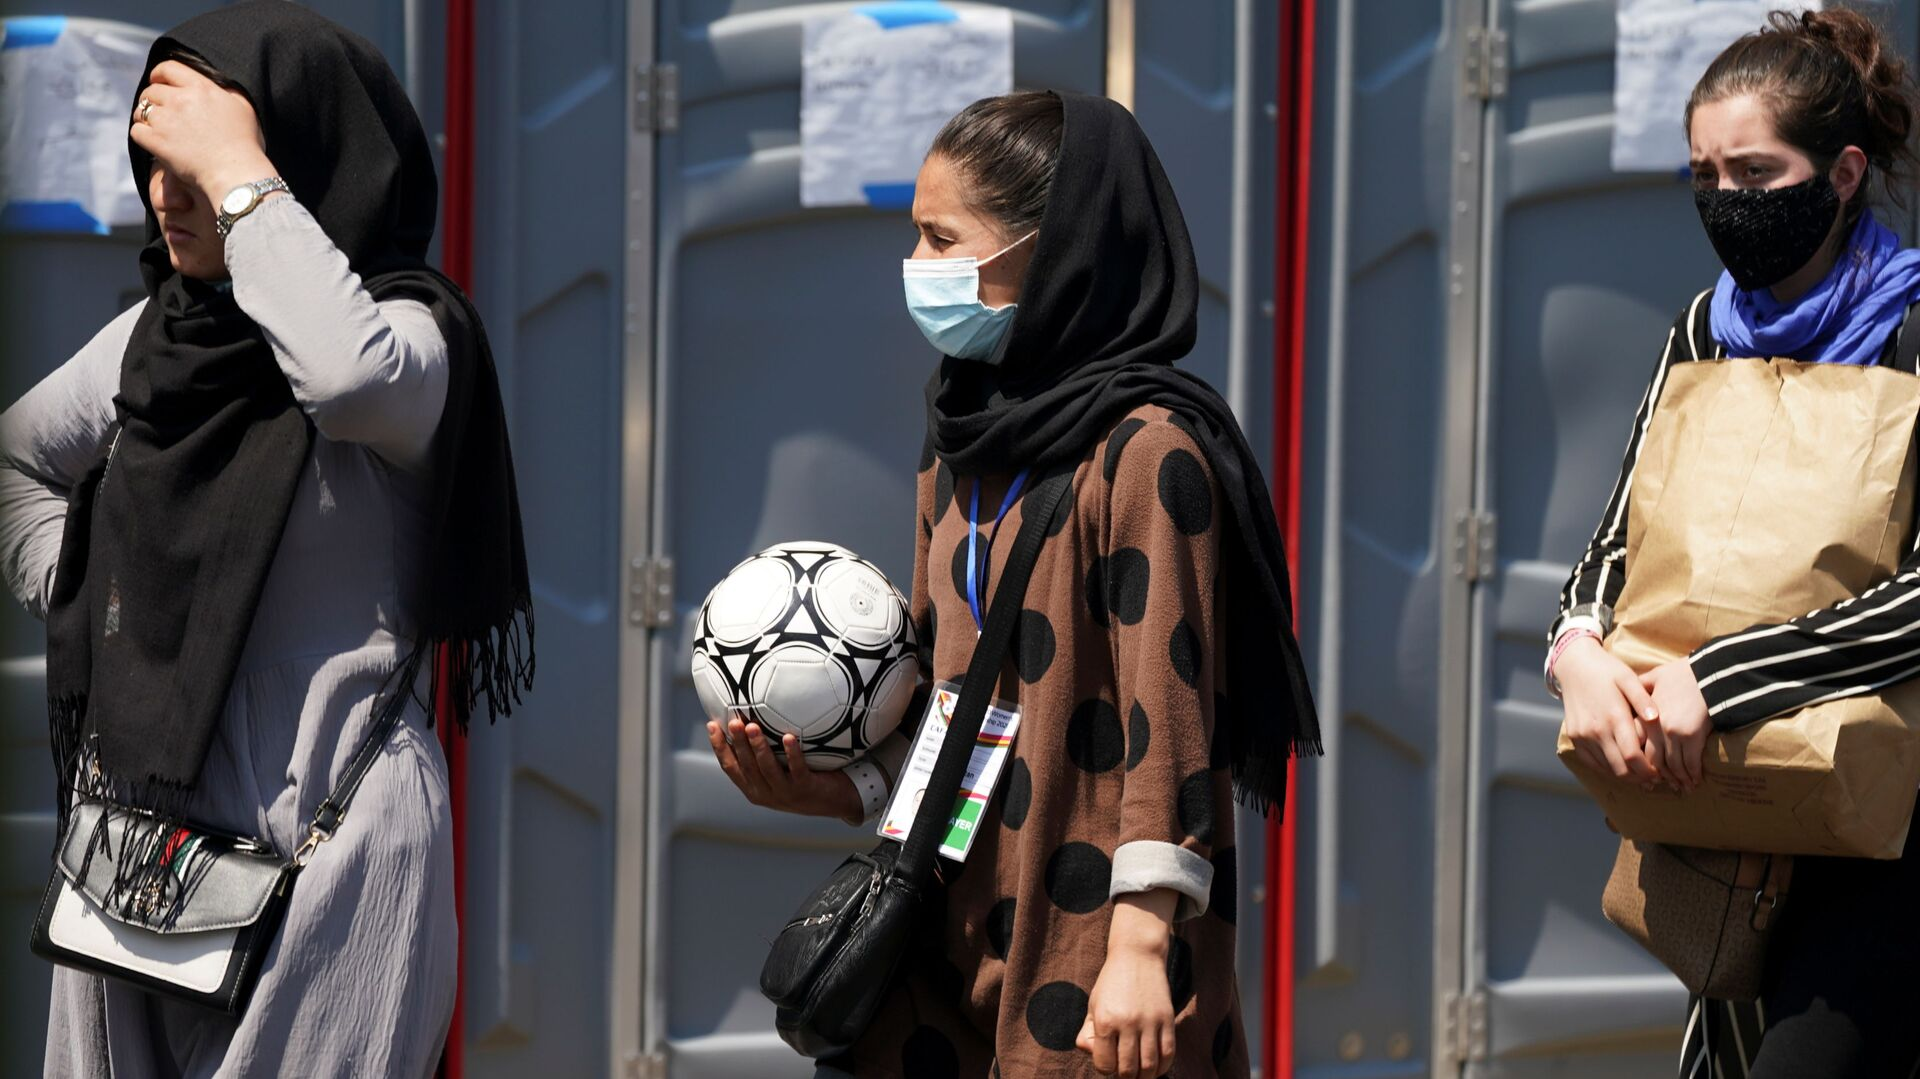 An Afghan woman holding a soccer ball and wearing a CAFA (Central Asian Football Association) credential, waits in line at a processing center for refugees evacuated from Afghanistan at the Dulles Expo Center near Dulles International Airport in Chantilly, Virginia, U.S., August 24, 2021 - Sputnik International, 1920, 15.09.2021